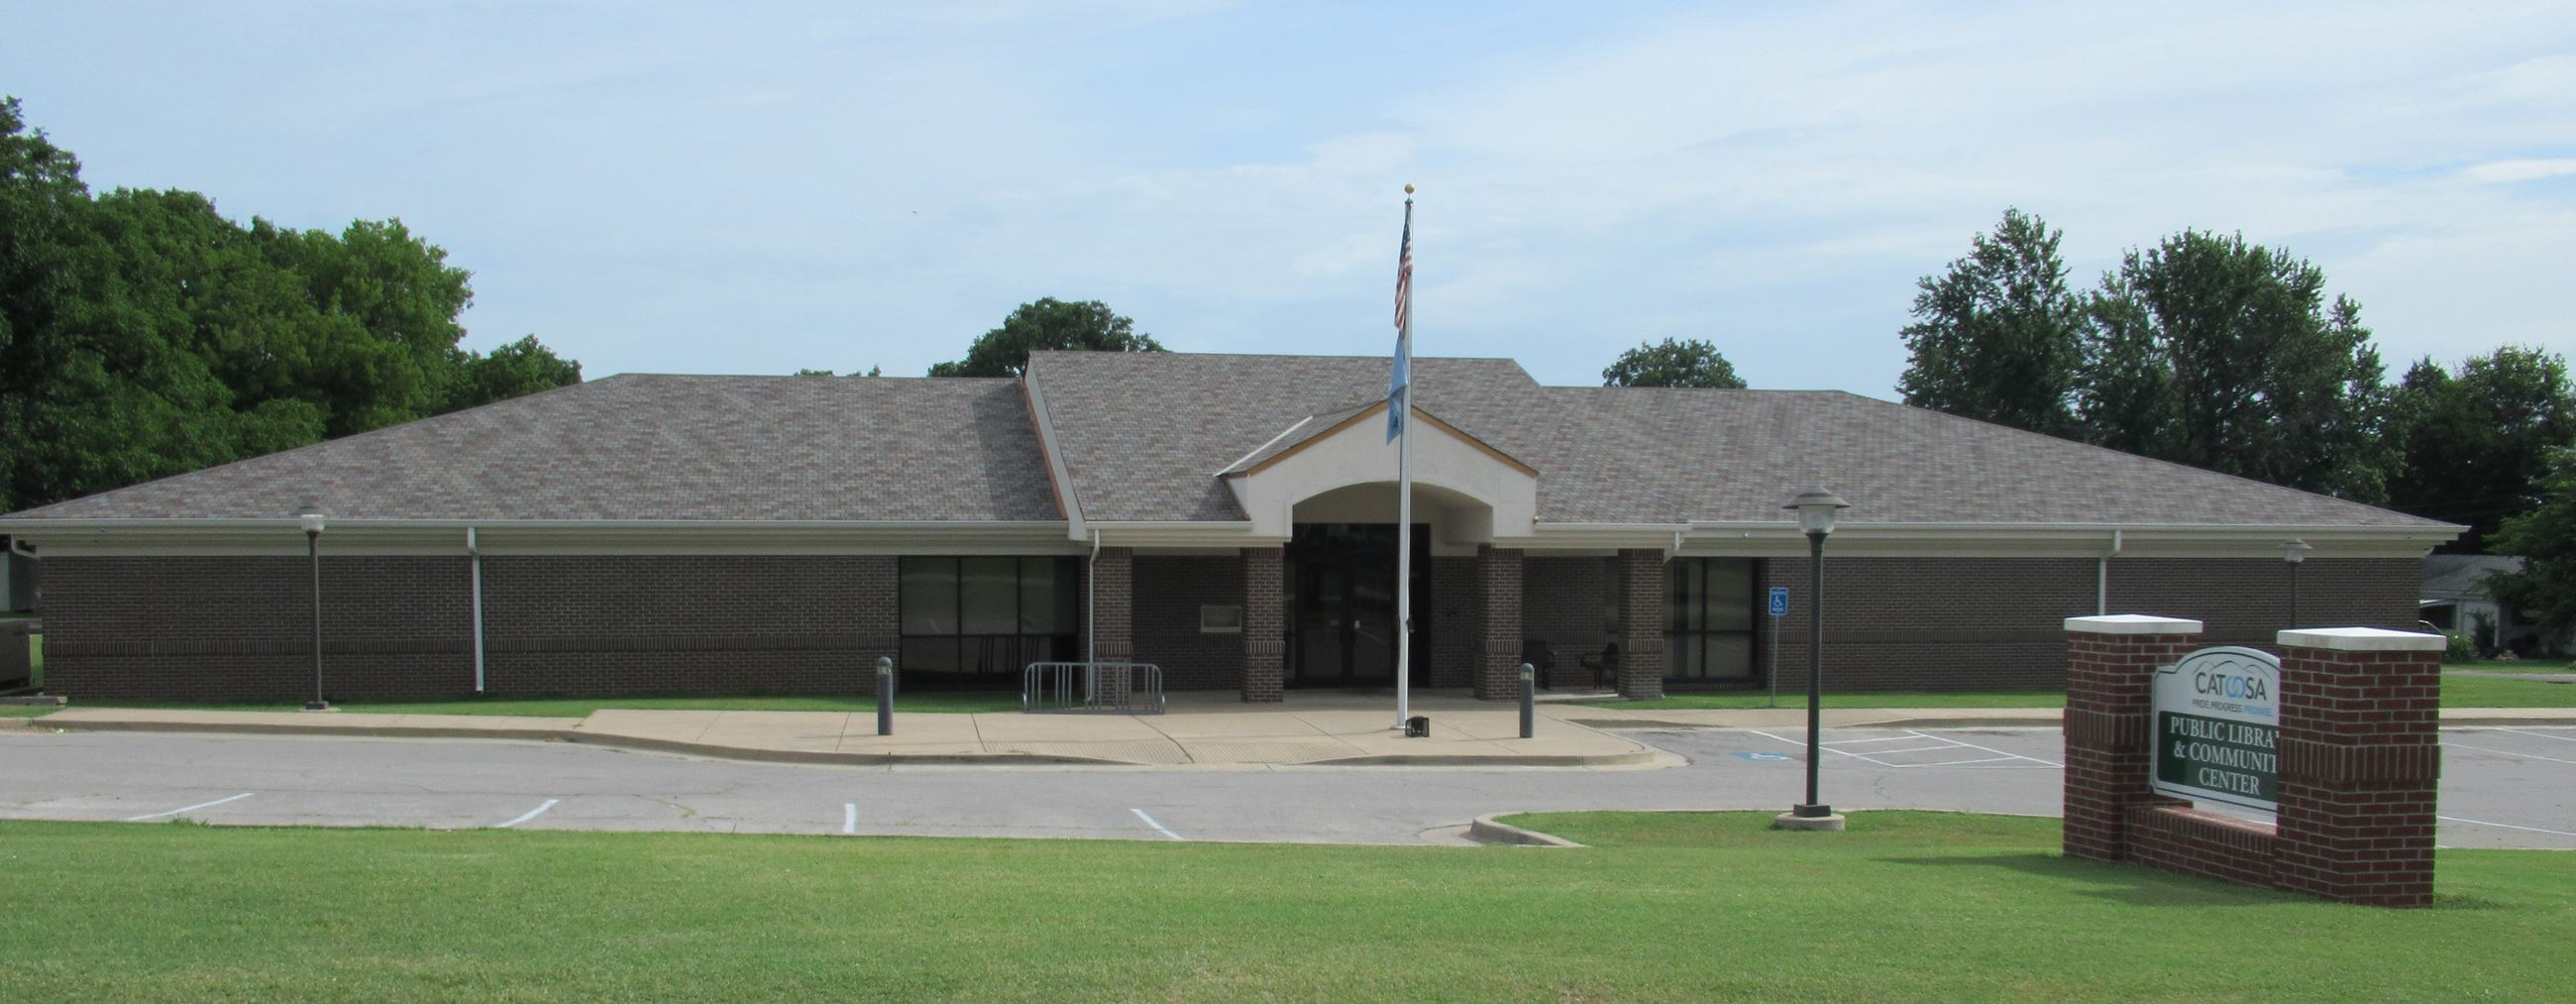 Catoosa Library Front